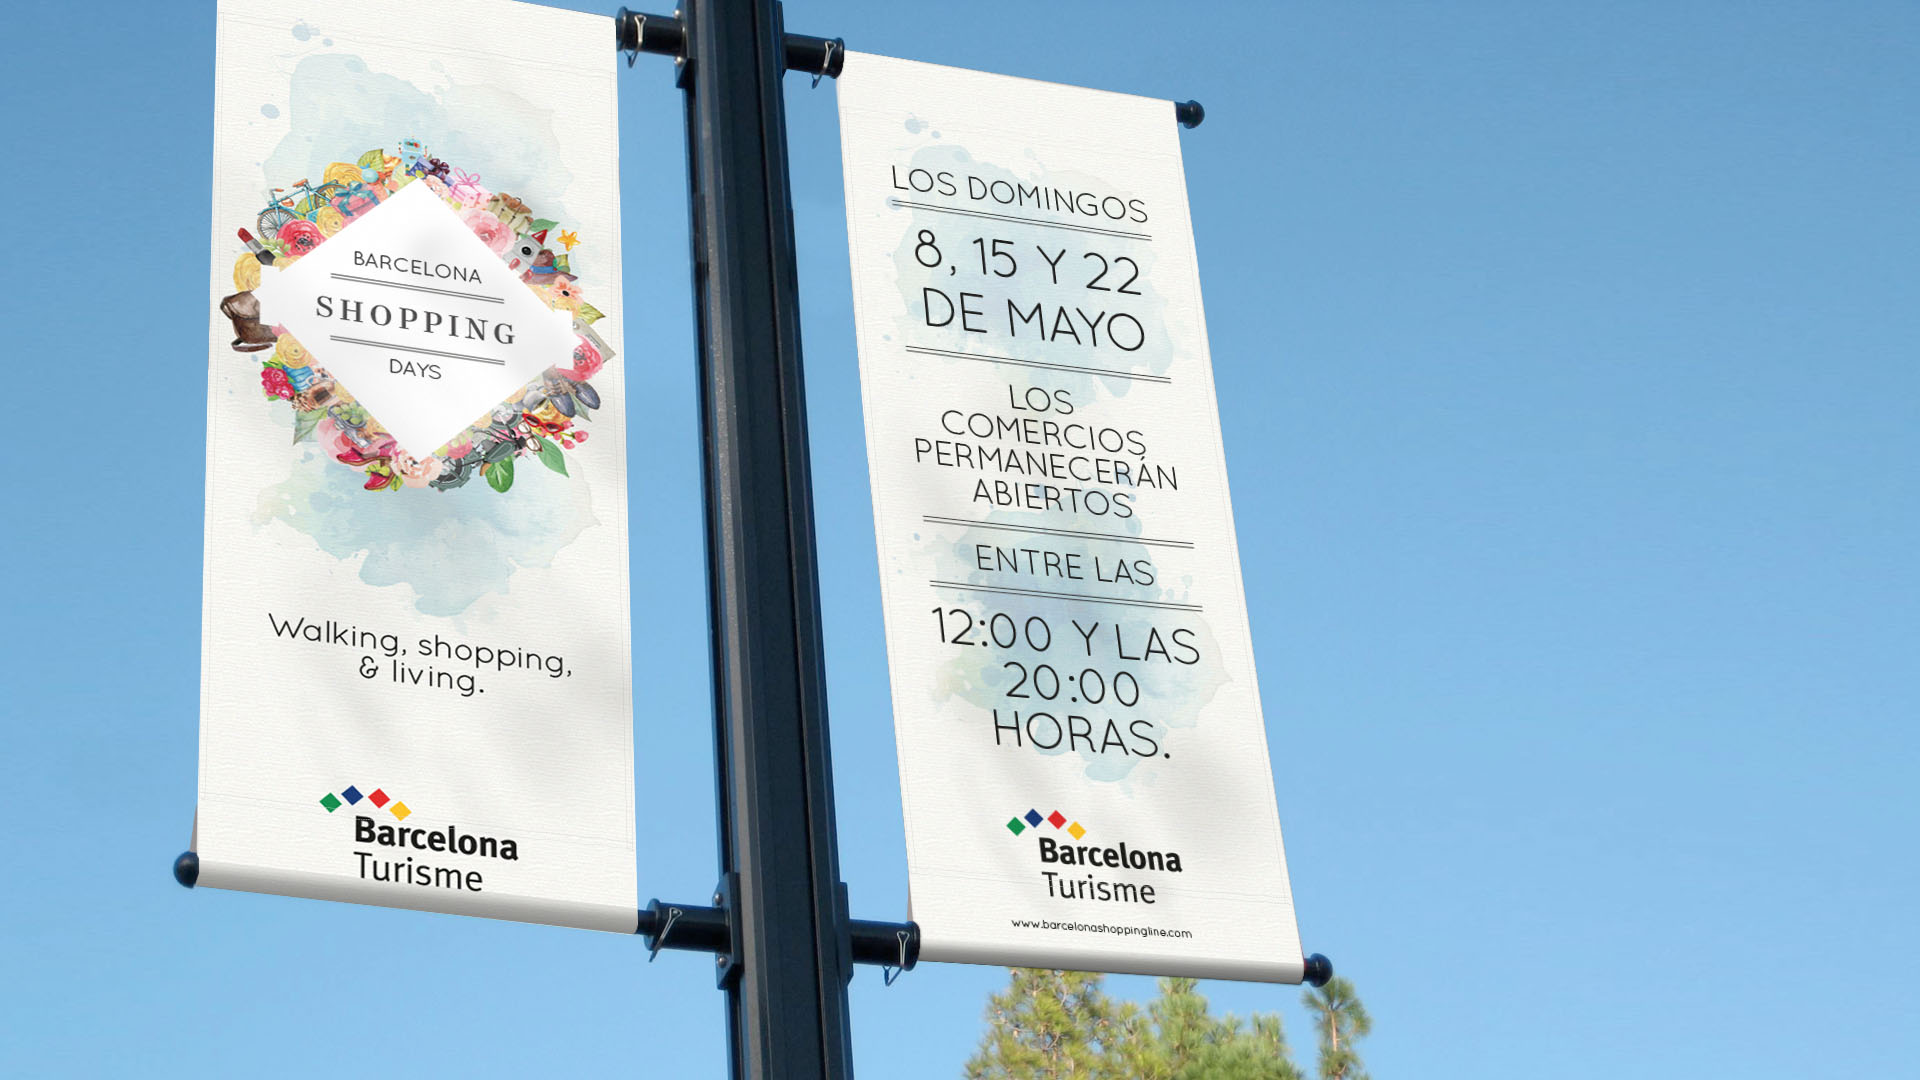 Barcelona Turismo - Shopping Days